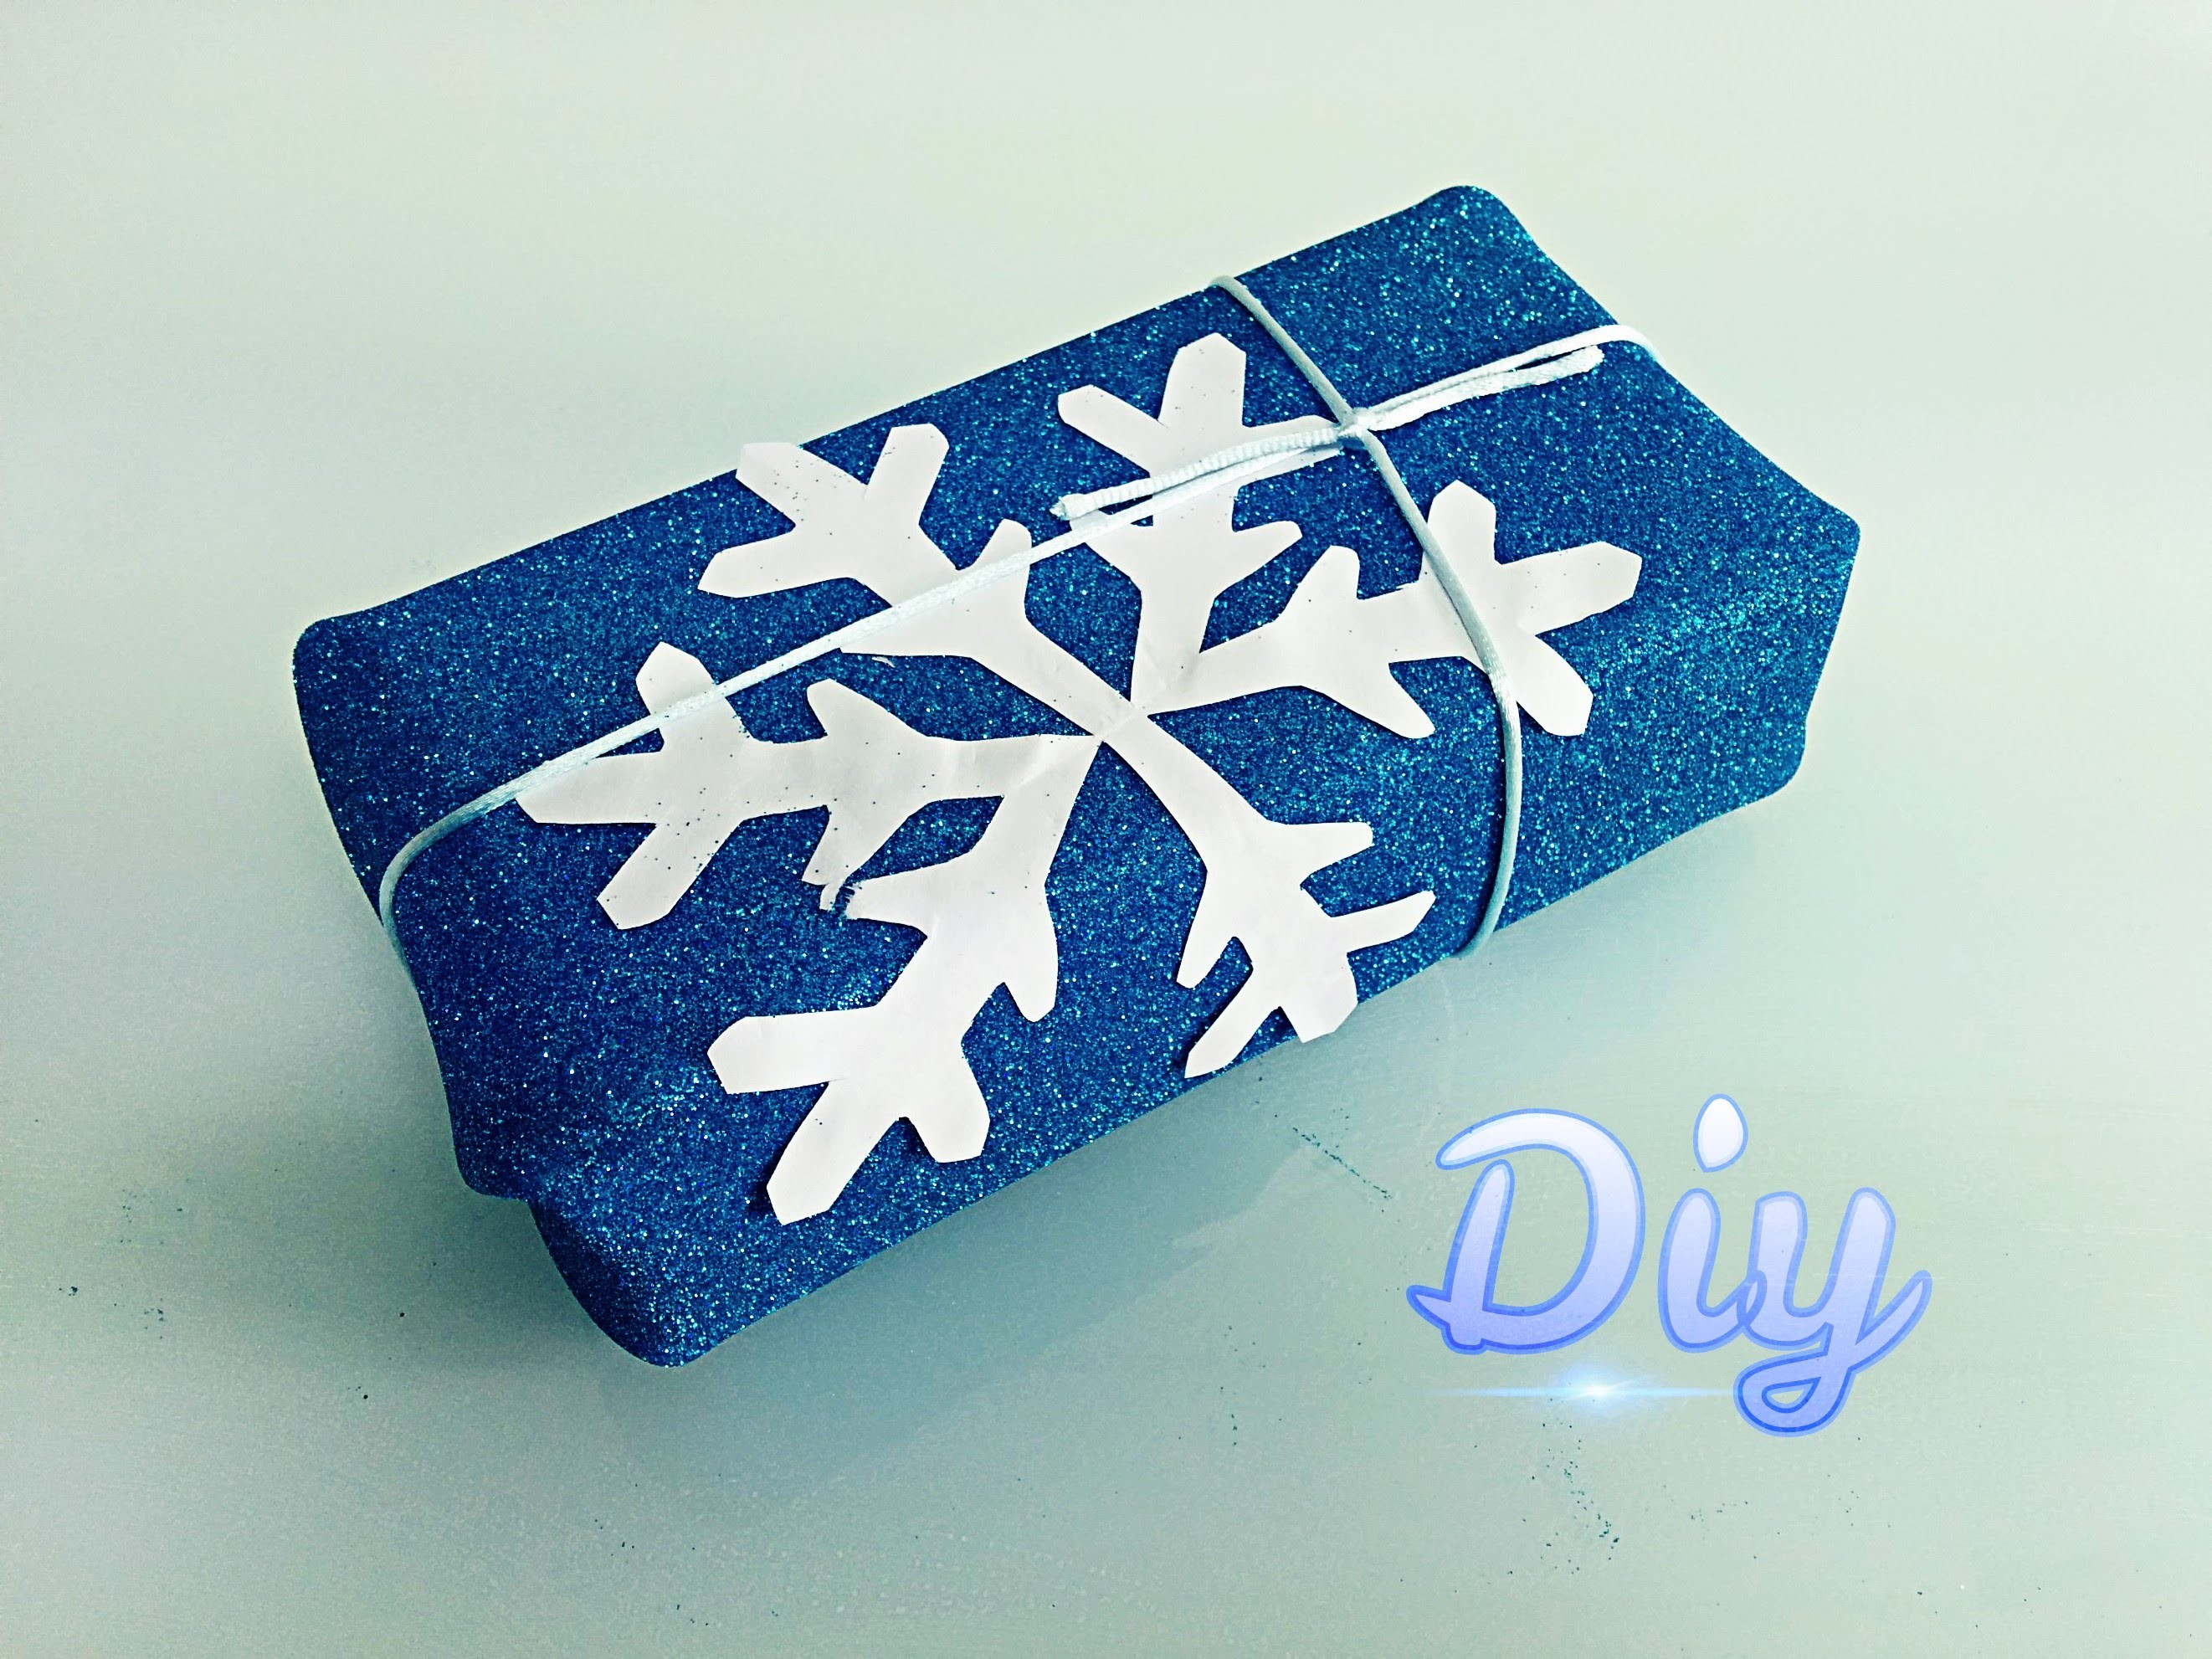 Como envolver regalos con goma eva. How to wrap gifts easy.